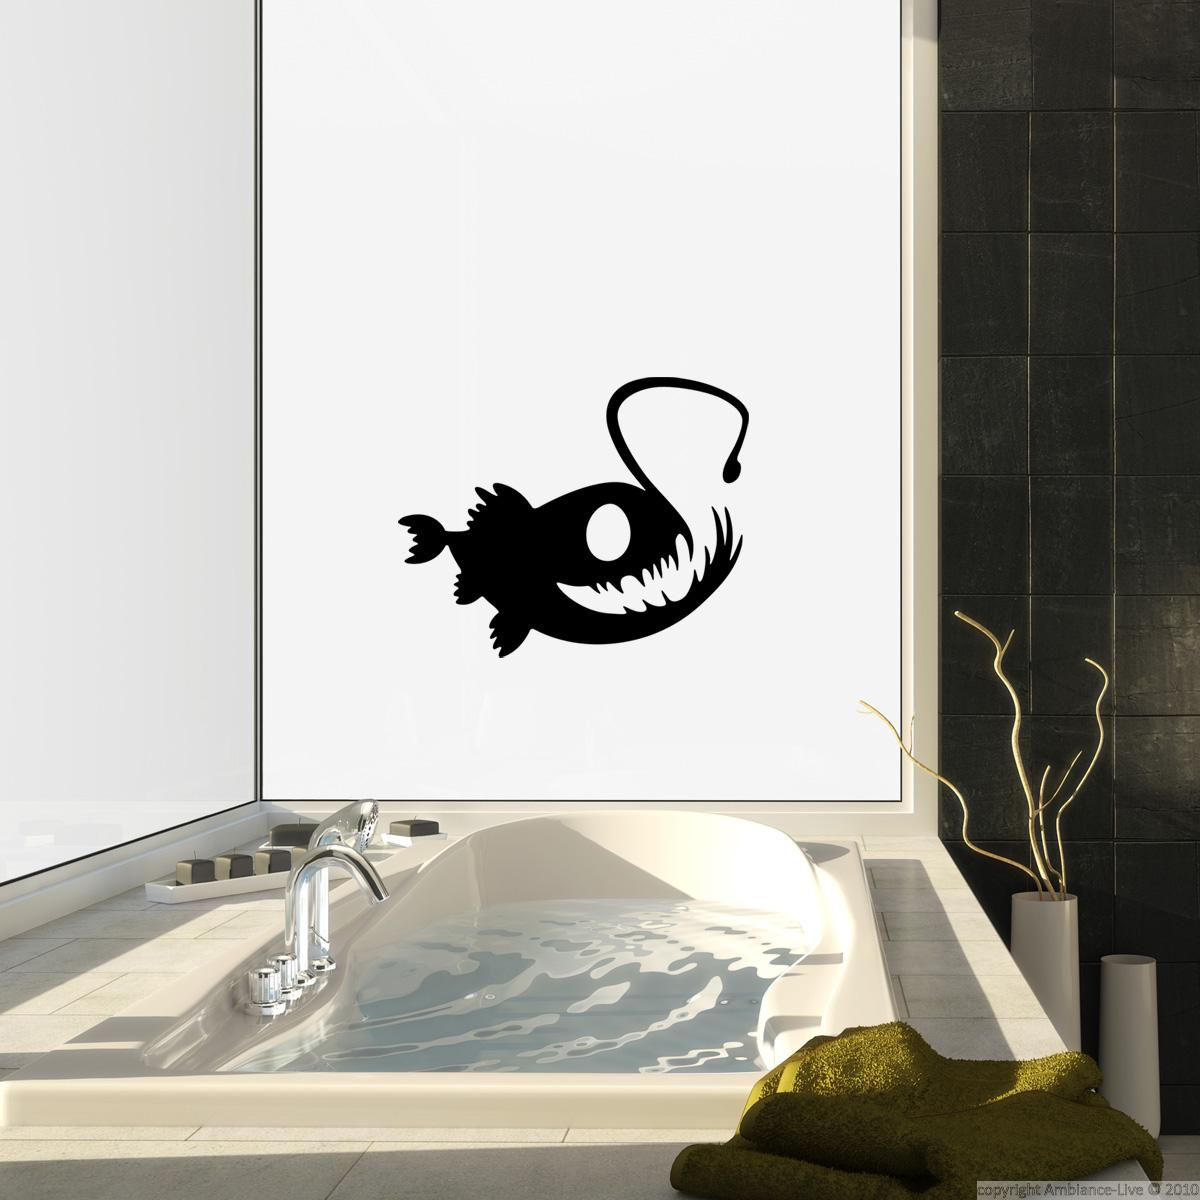 stickers muraux pour salle de bain sticker mural dr le p cheur. Black Bedroom Furniture Sets. Home Design Ideas